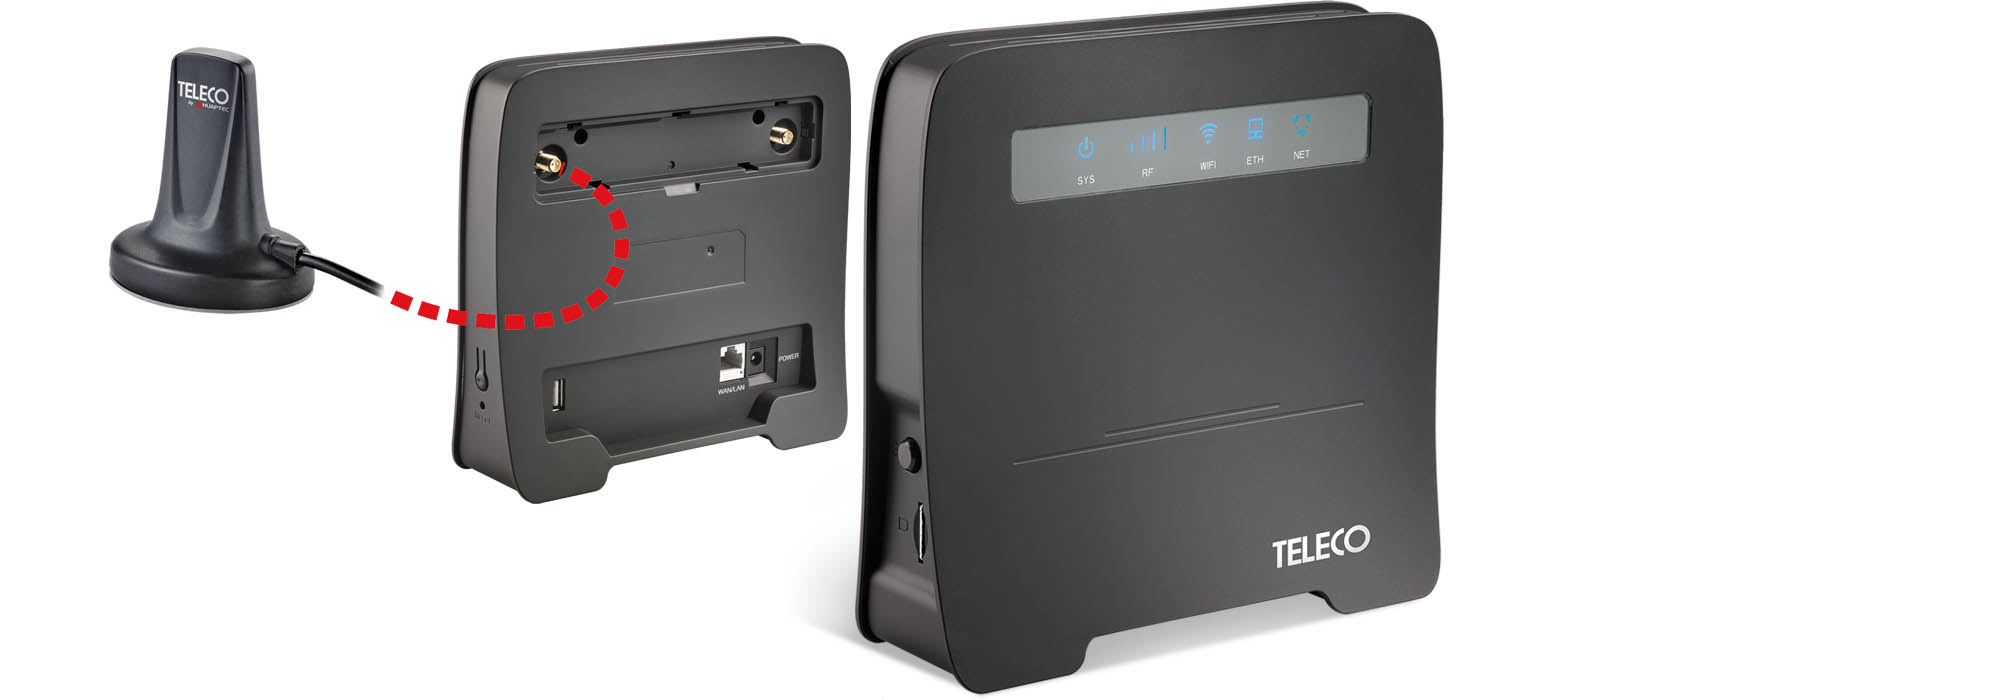 Internet for all the family with the WiFi VAN T400 router